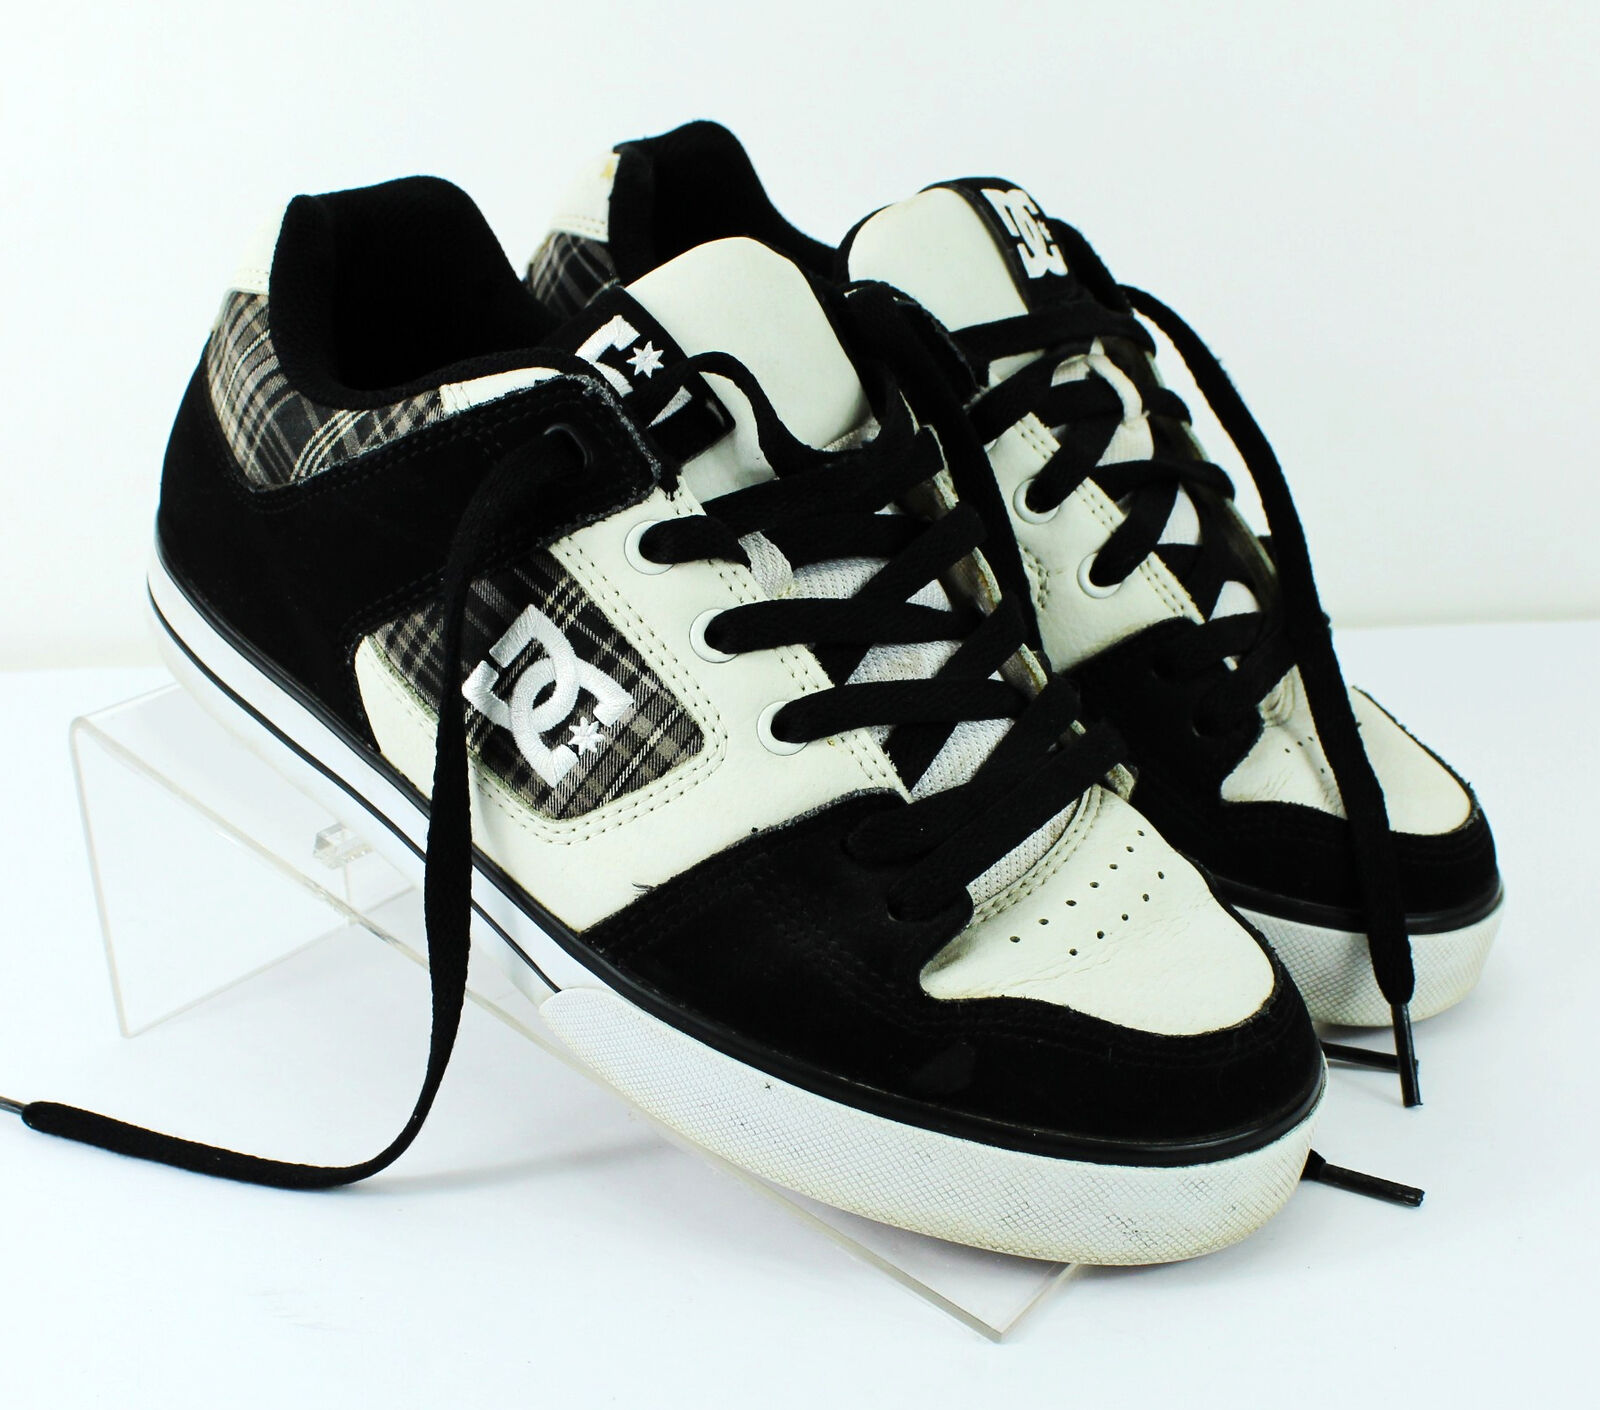 a1cac4367261 DC Shoes Men s Black   White Pure Pure Pure XE Skate Shoes   Size 8 ...